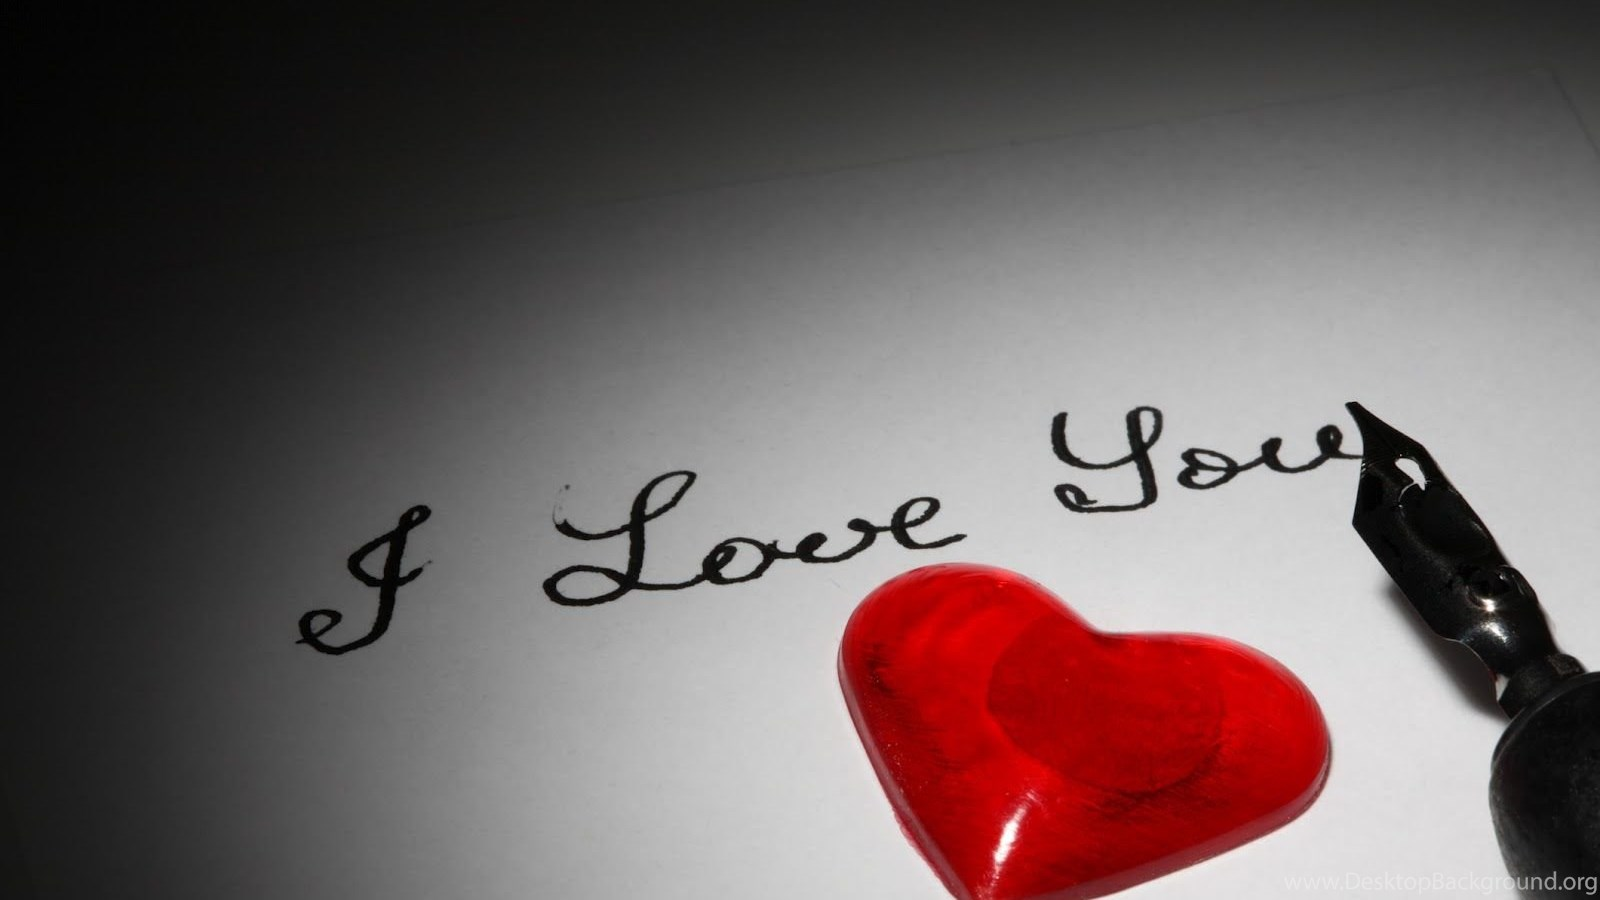 I Love You Wallpapers Wallpapers Cave - Love You Heart Touching , HD Wallpaper & Backgrounds